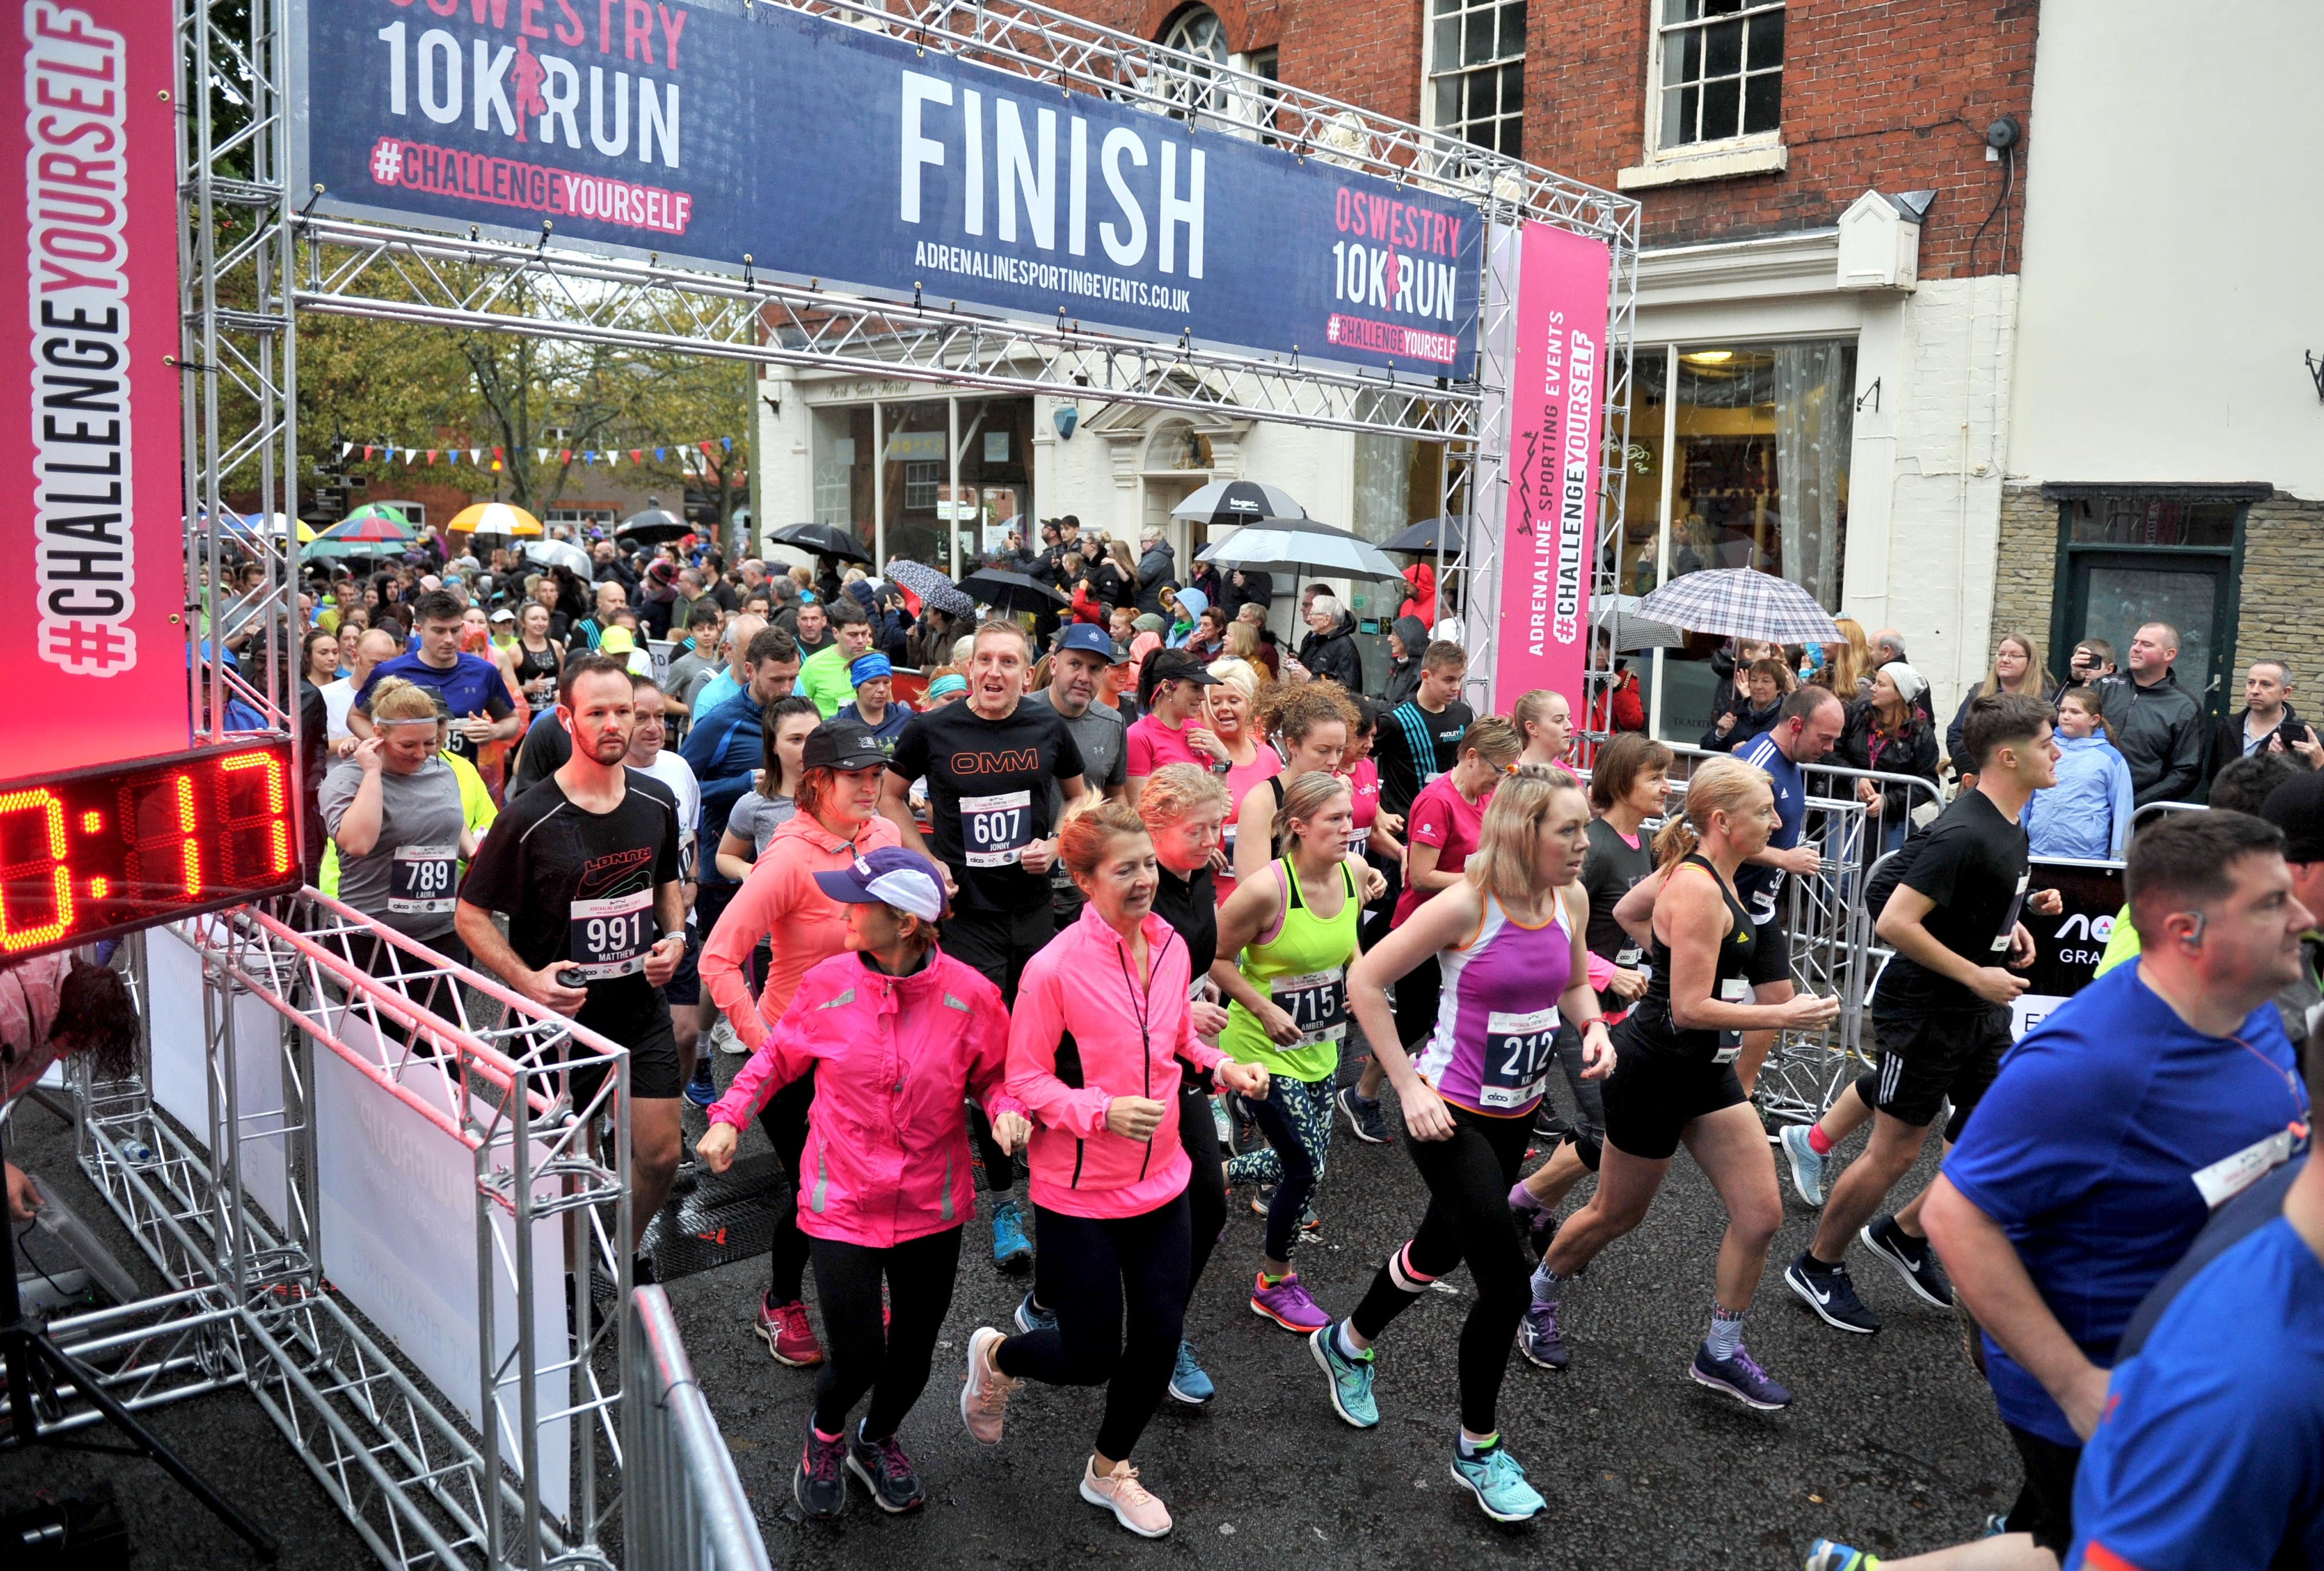 GALLERY: Crowds brave rain for first-ever Oswestry 10K